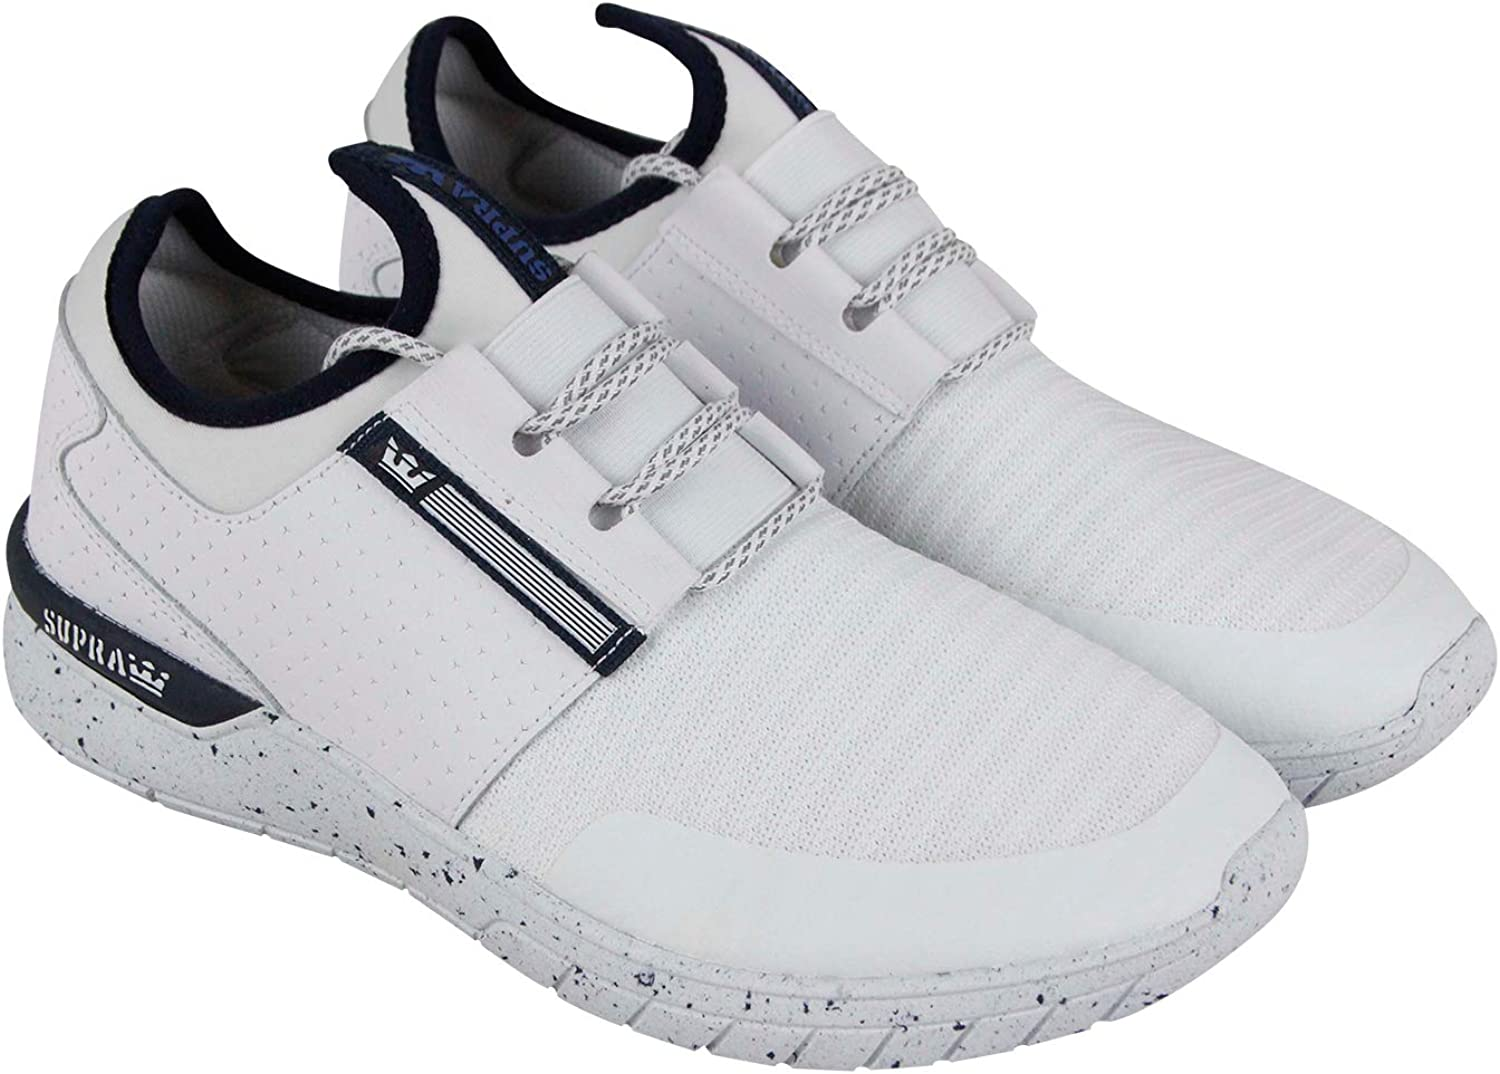 Supra Men's Flow Run Shoes,10.5,White/Navy-White B075ZYWQW9 B075ZYWQW9 B075ZYWQW9 e40d29